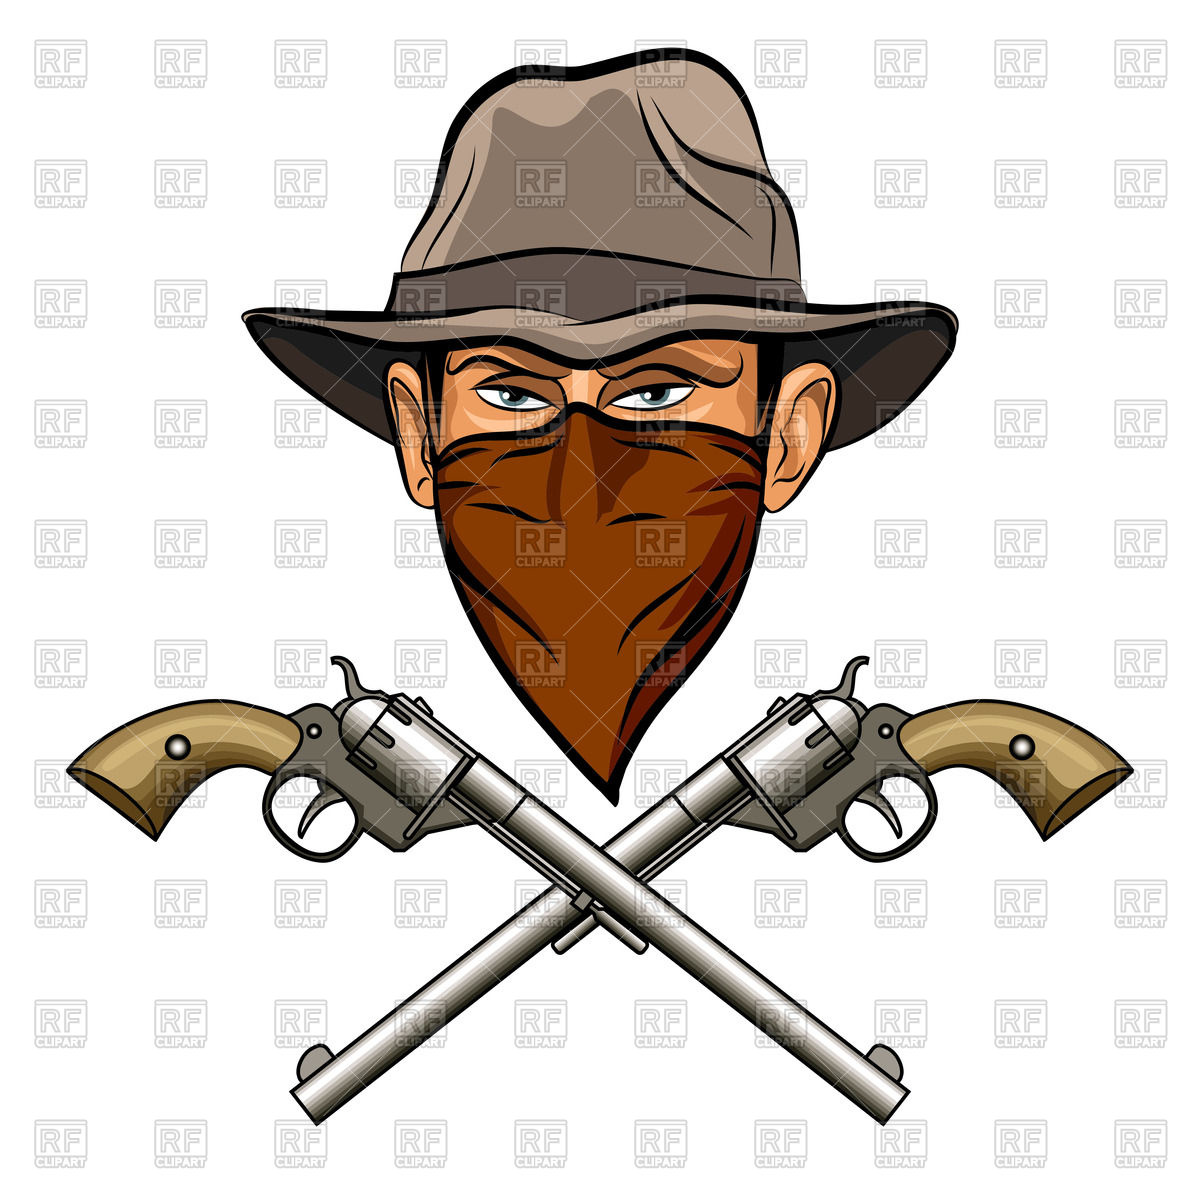 ee2423c74e7df 1200x1200 Bandit In Hat With Bandana On Face And Two Crossed Guns (Six